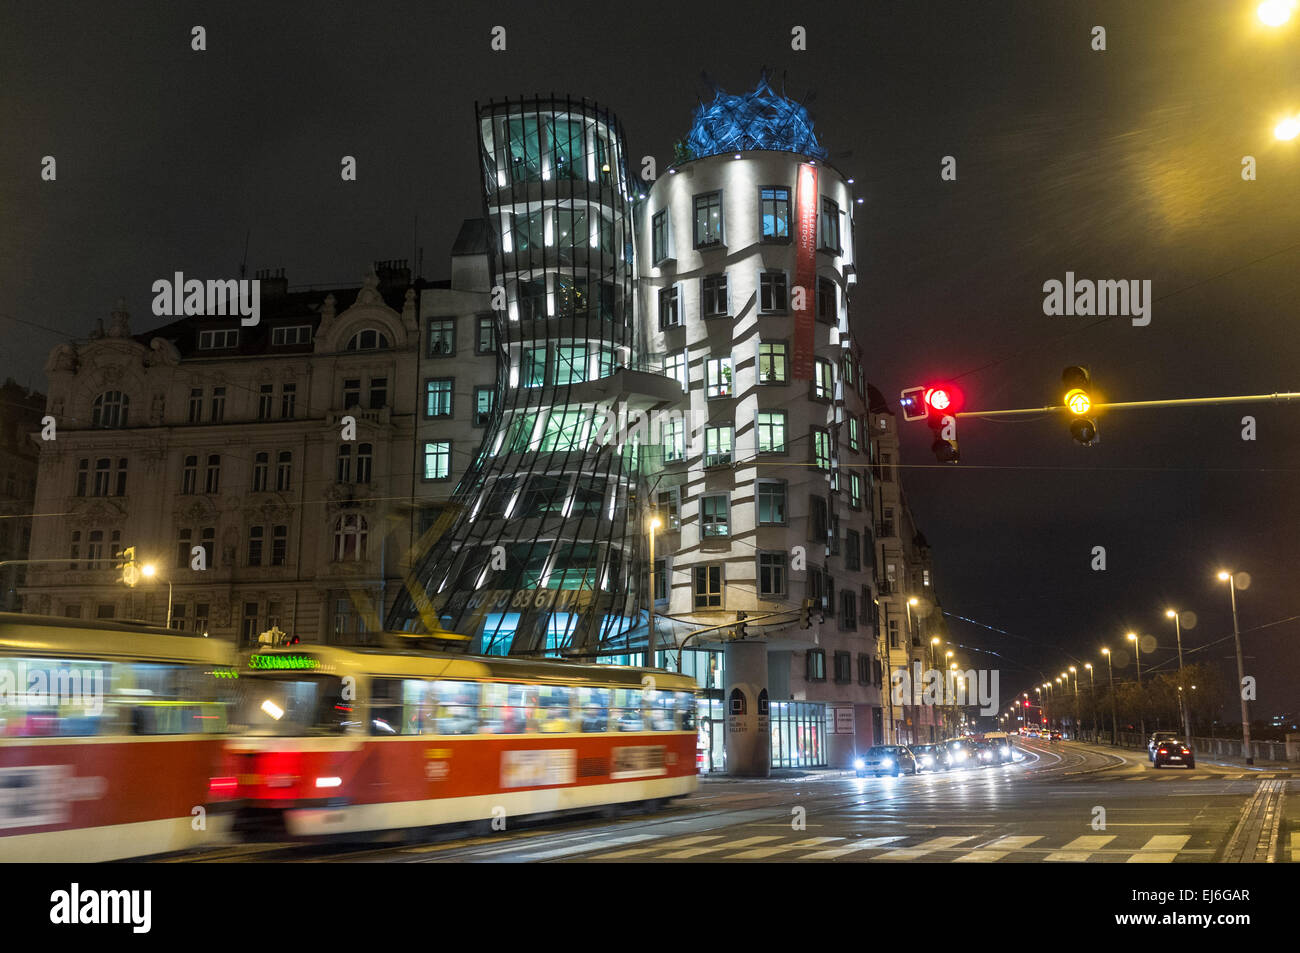 Dancing House by Vlado Milunić and Frank Gehry. Prague, Czech Republic - Stock Image